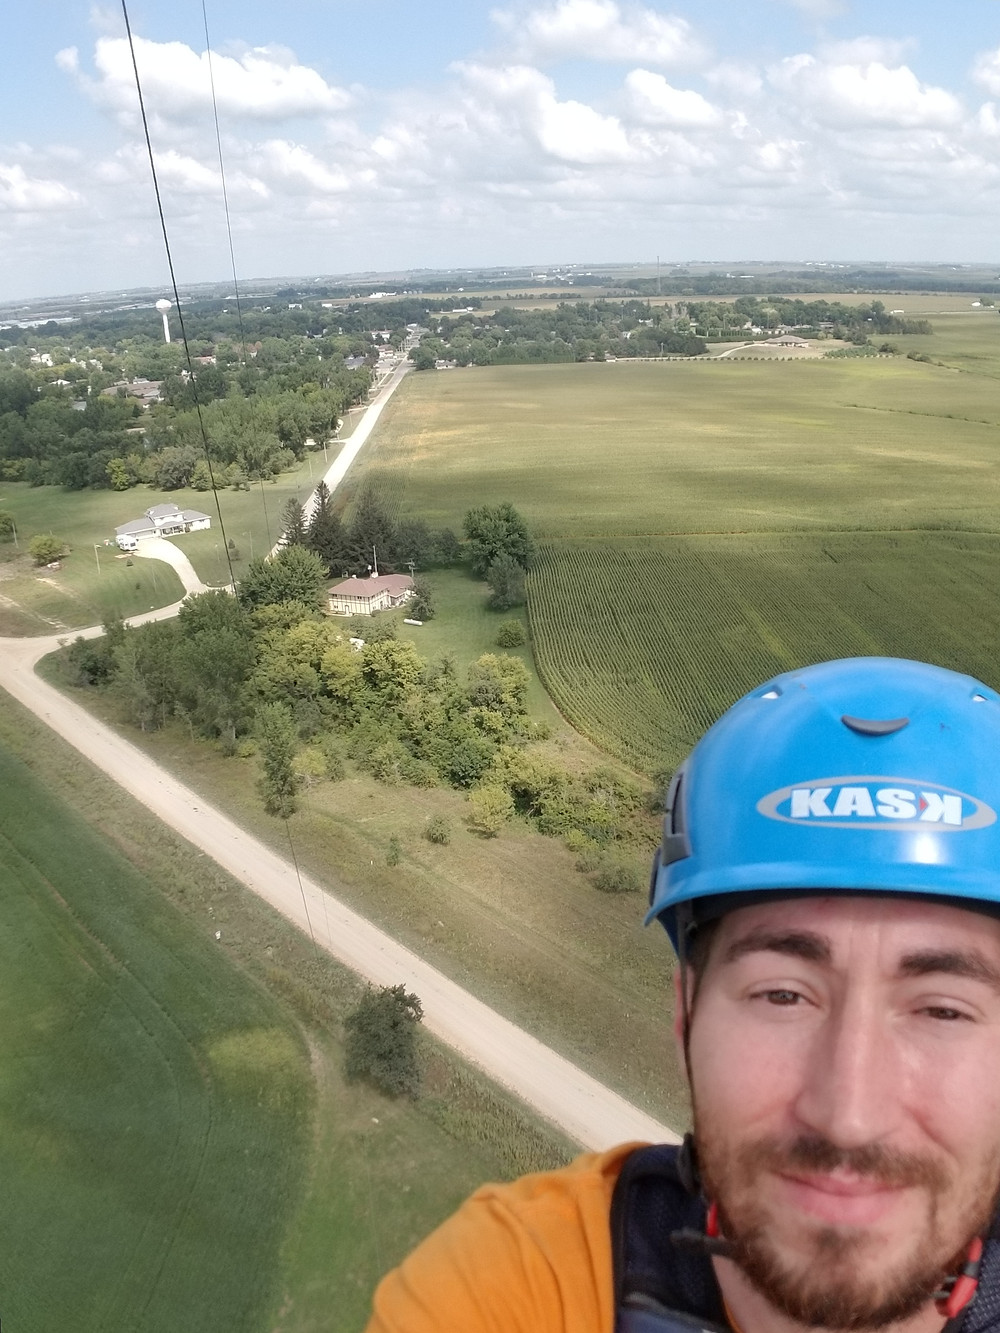 Brad Cline working on tower upgrades!